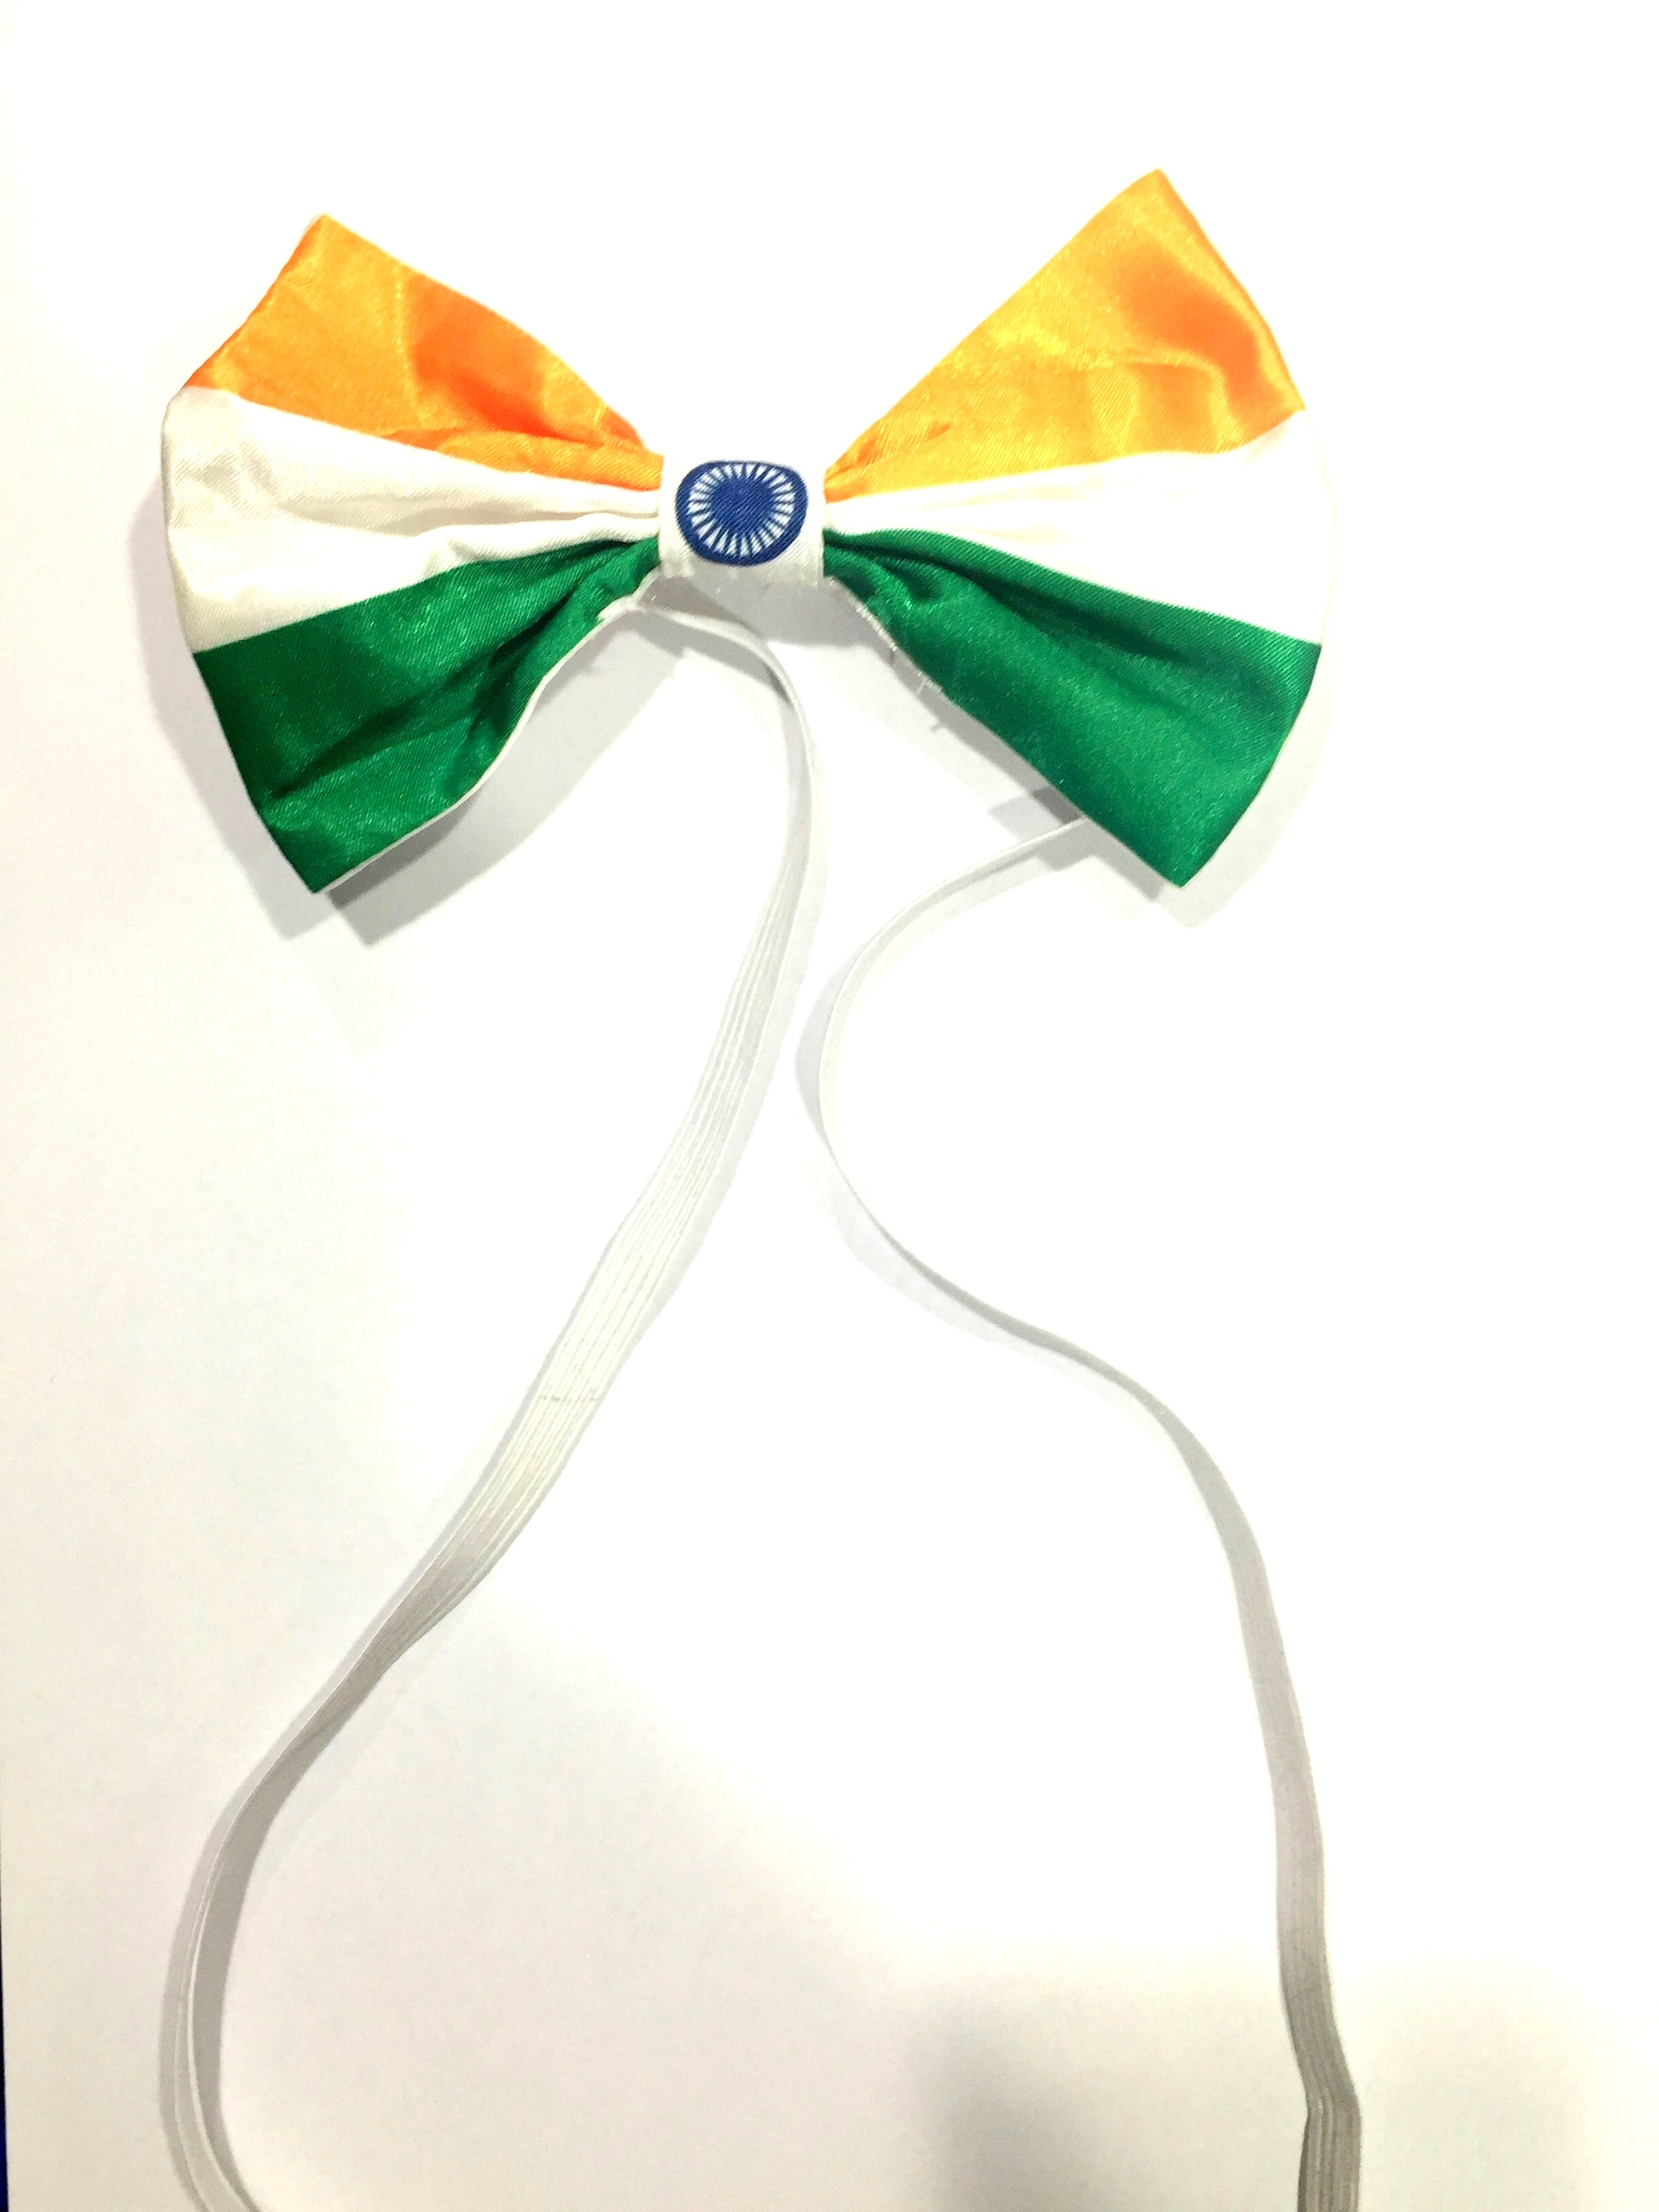 The Indian flag representing India. Available as a standard pre-tied bow tie only. Made in Britain. Made with % Polyester Satin. Dry clean only.